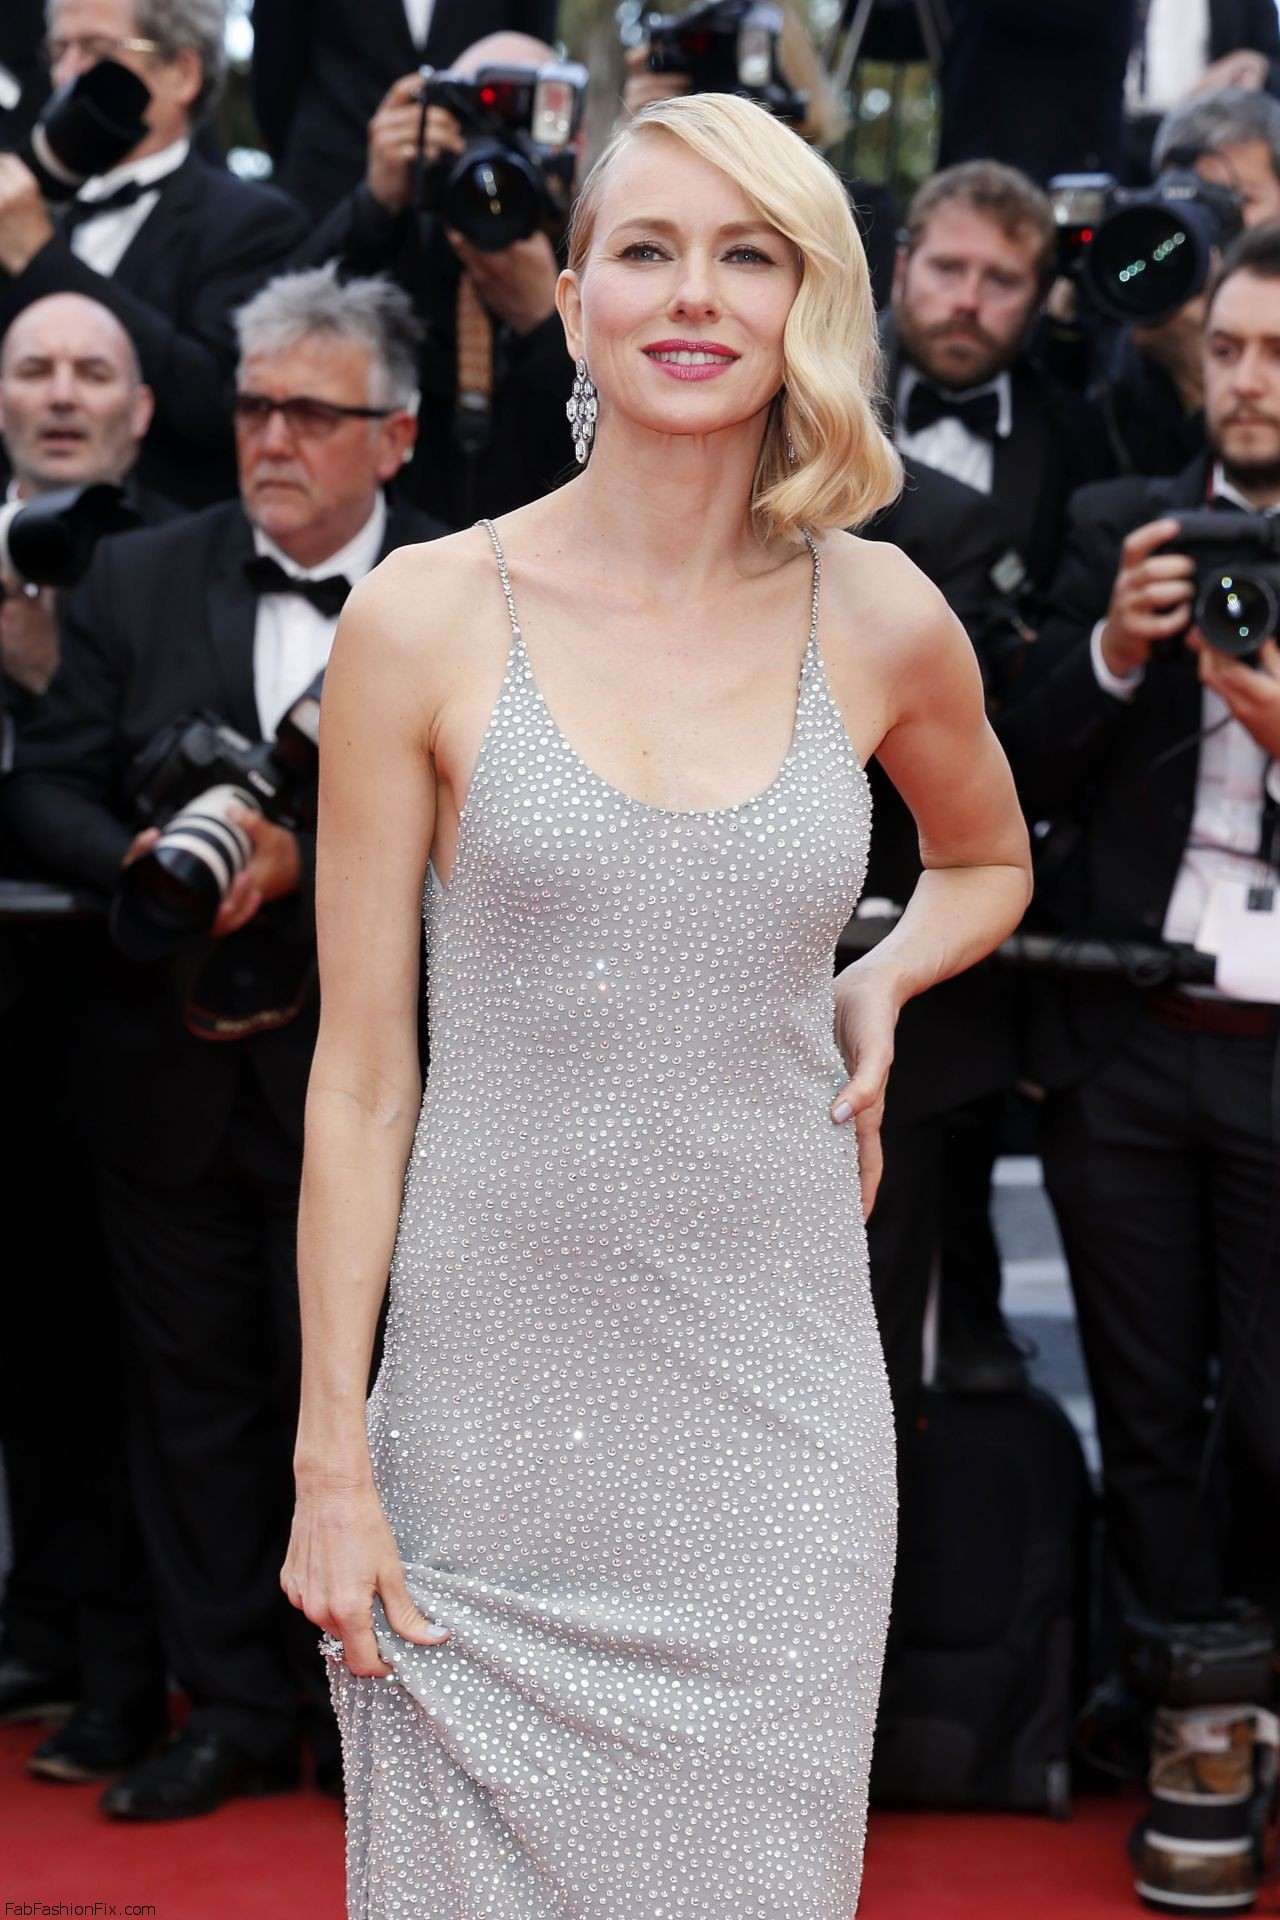 naomi-watts-money-monster-premiere-2016-cannes-film-festival-13